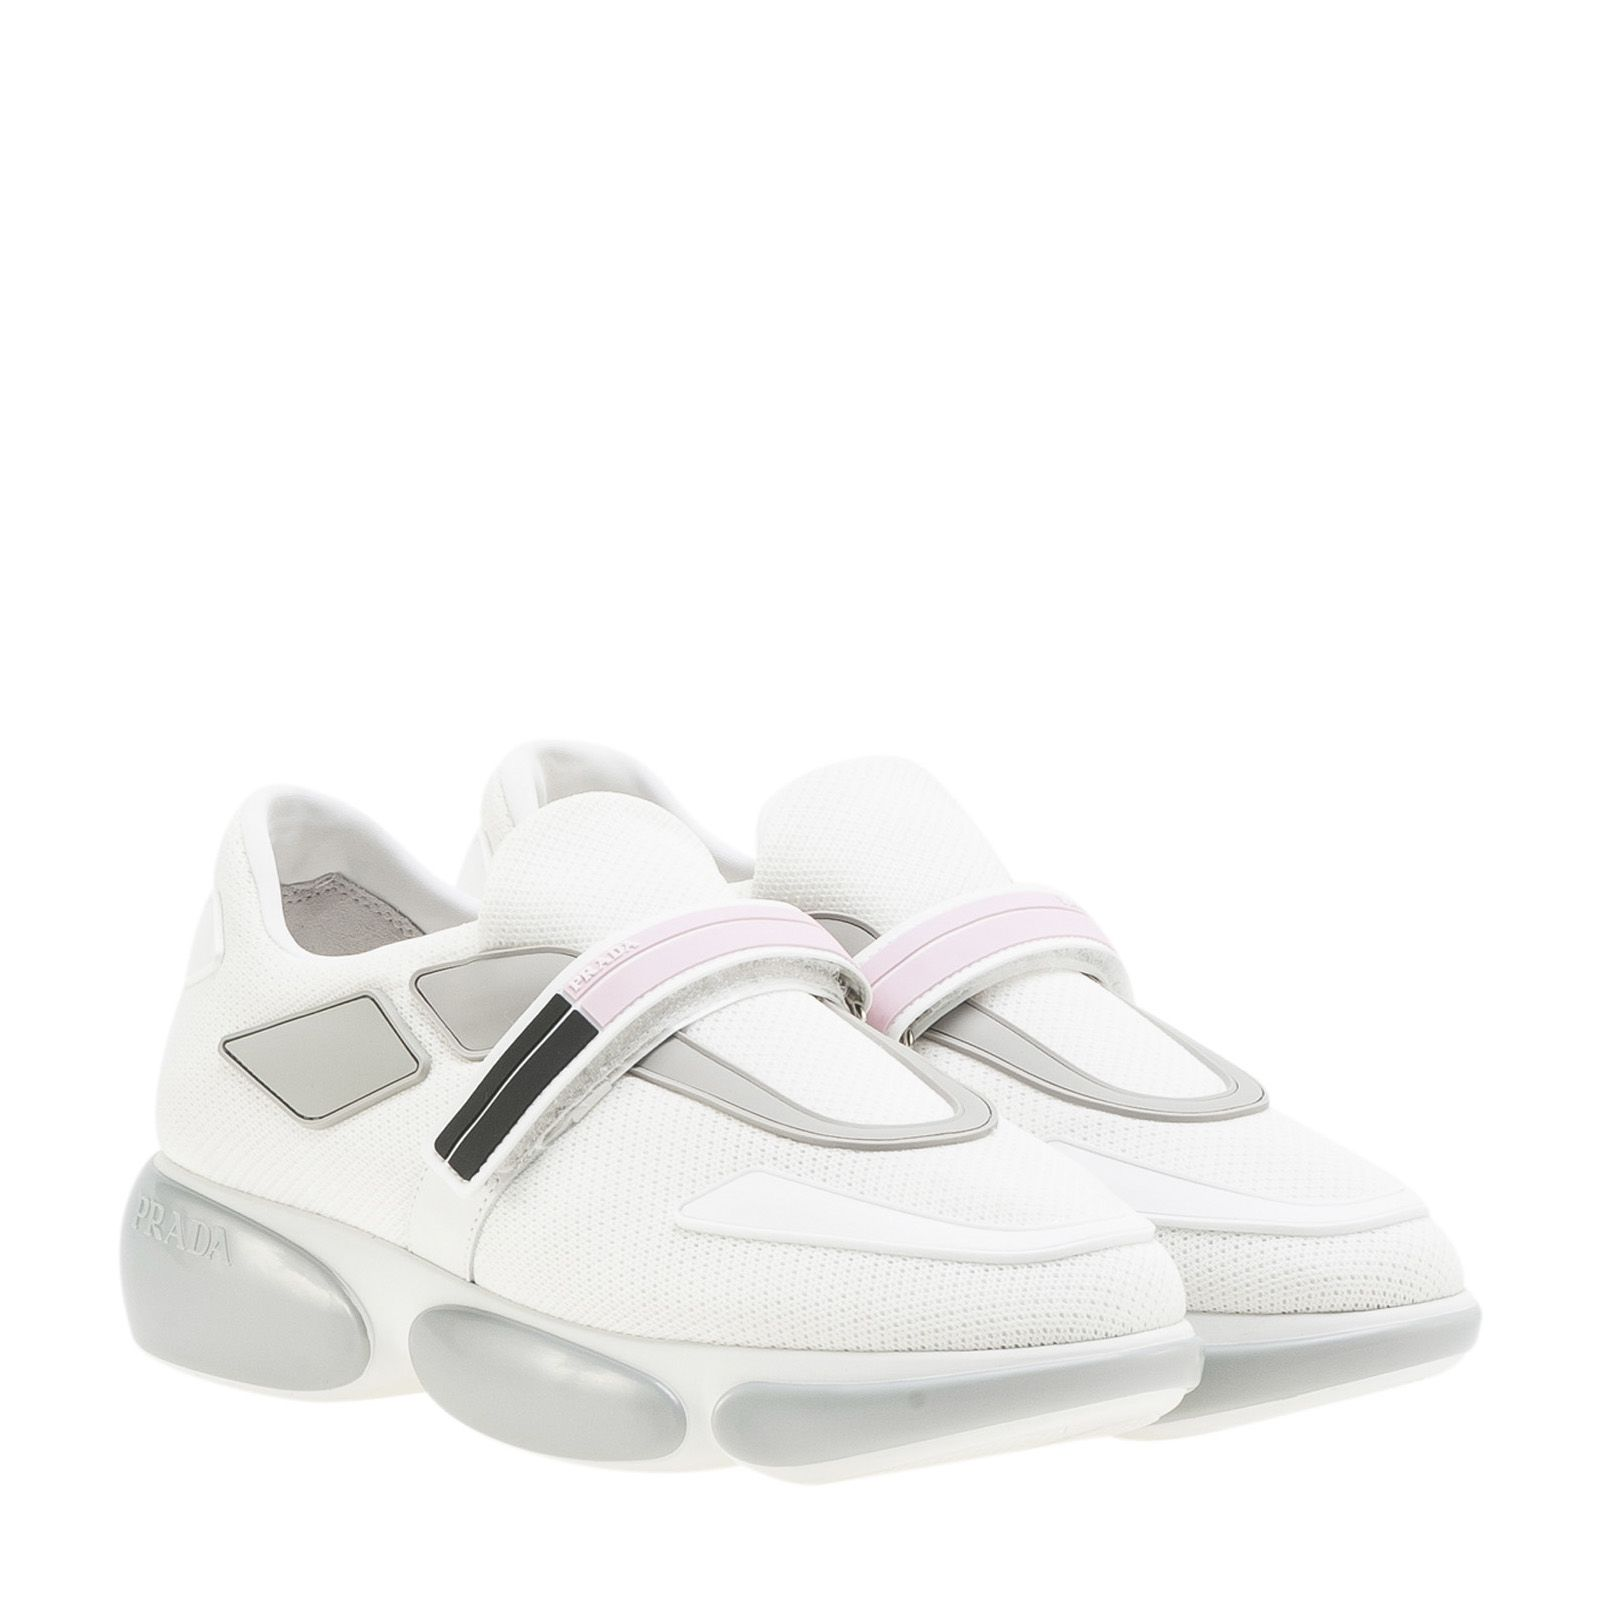 PRADA Cloudbust Rubber And Leather Trimmed Mesh Sneakers, Argento Aqua